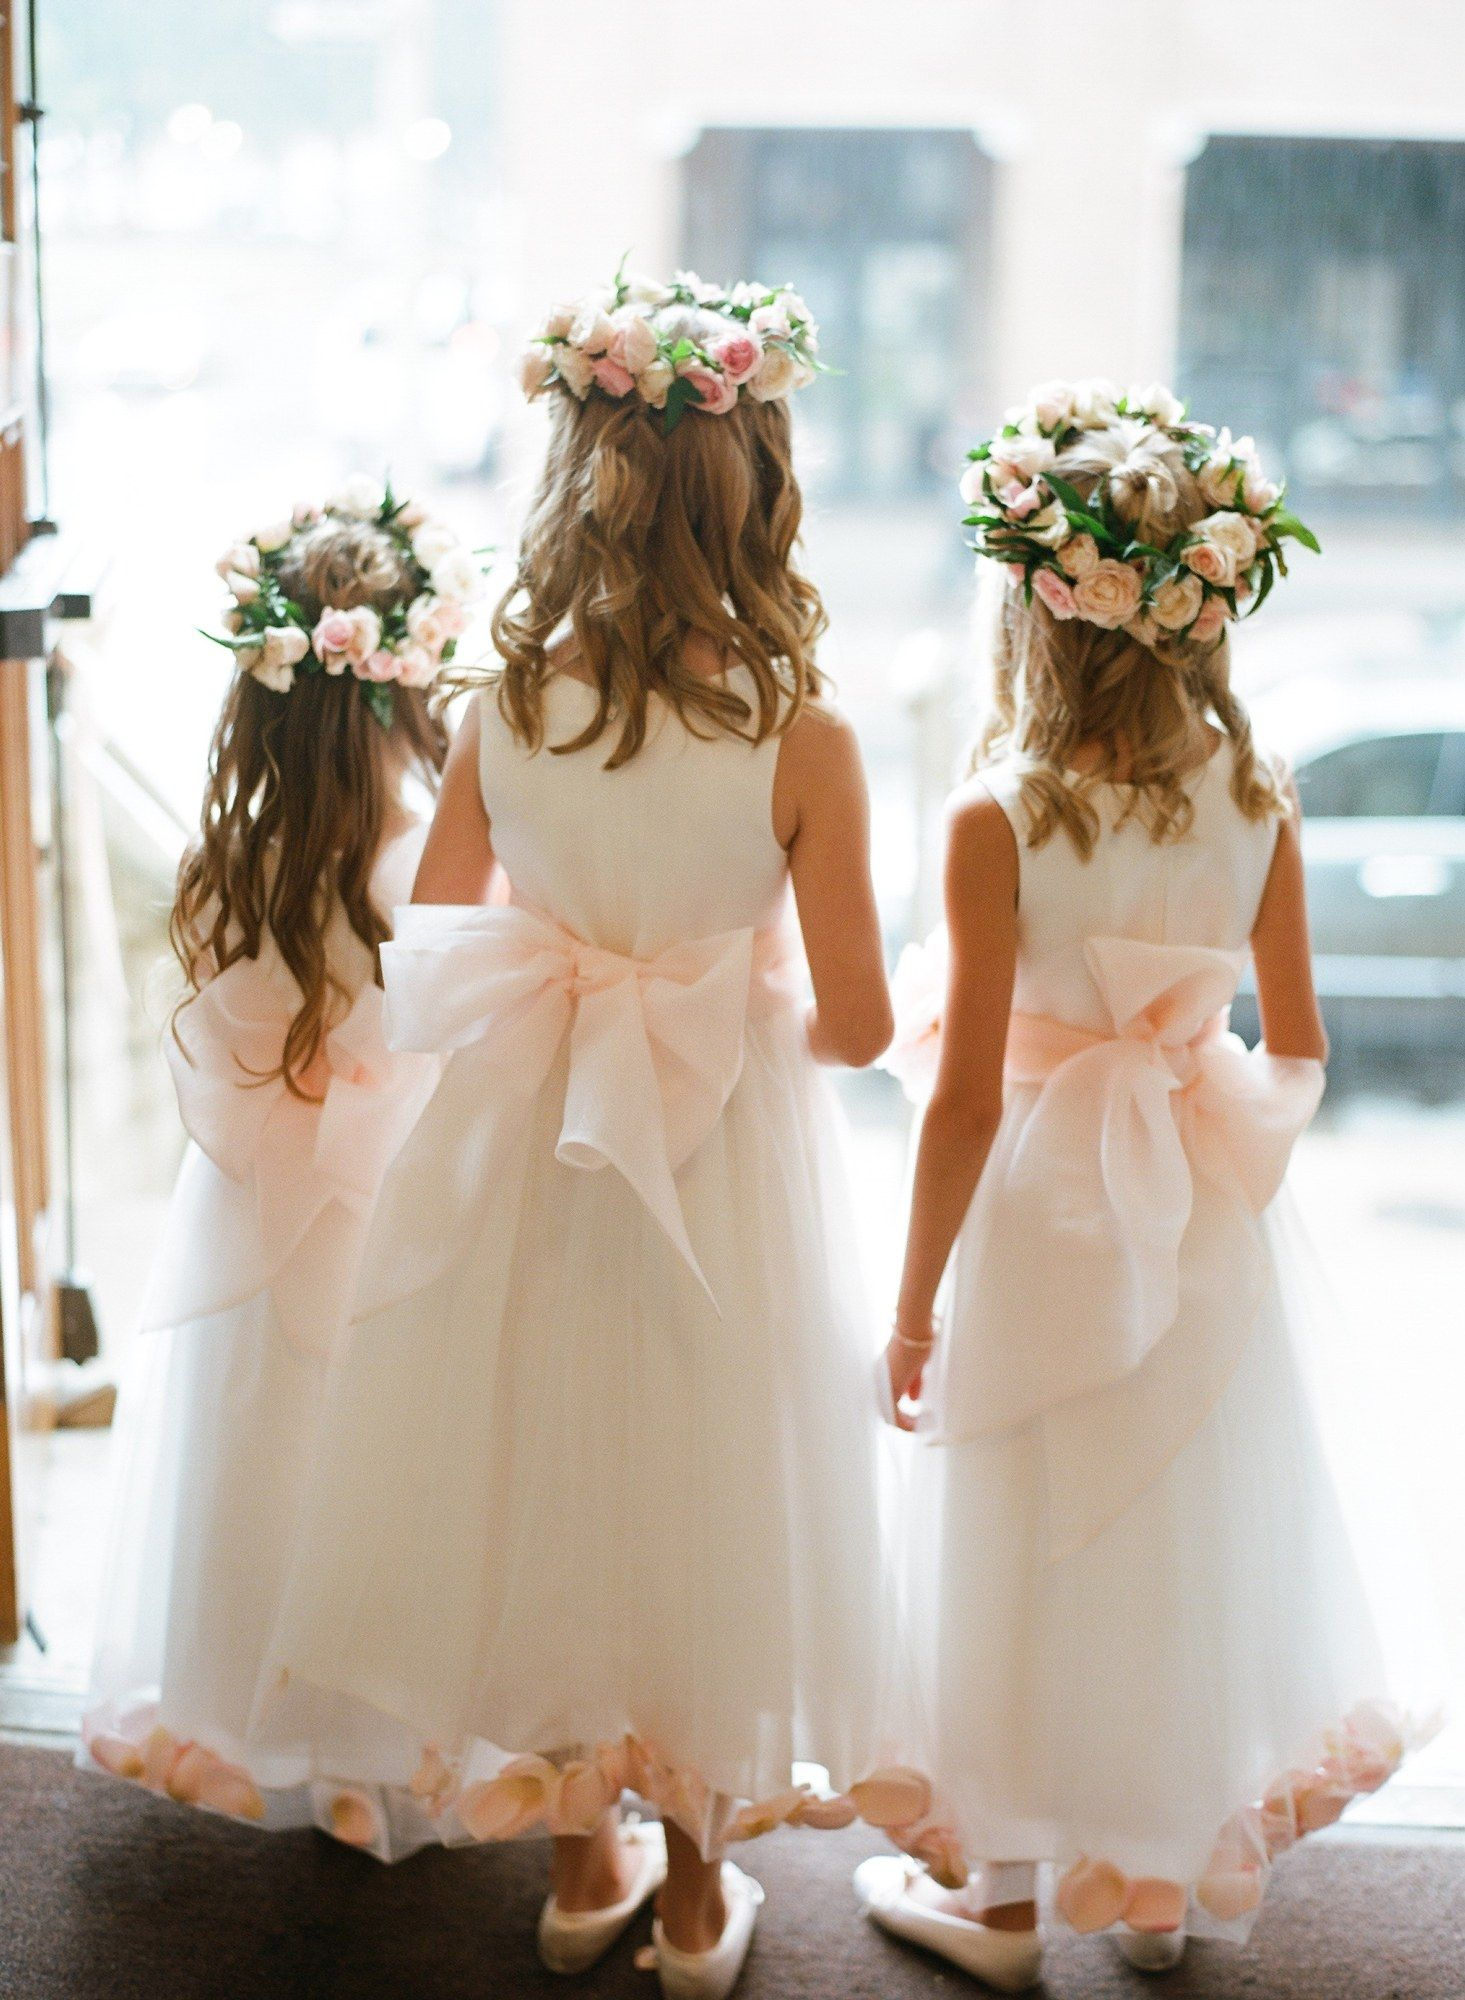 How to host an elegant kidfriendly wedding in never too